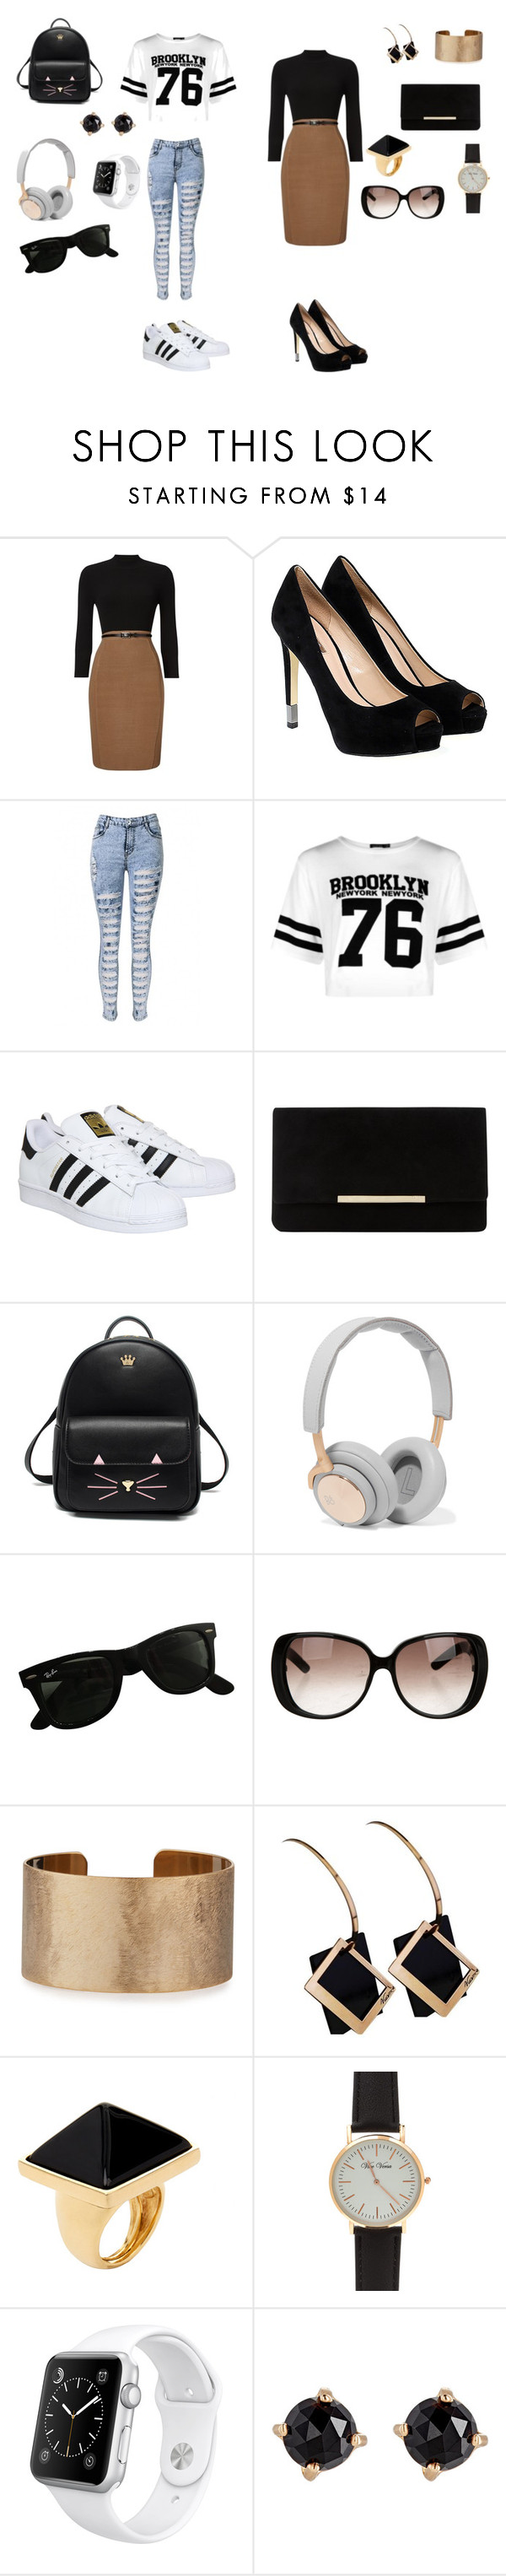 """""""imagination"""" by briyisantillan ❤ liked on Polyvore featuring Phase Eight, GUESS, Boohoo, adidas, Dune, B&O Play, Ray-Ban, Gucci, Panacea and Kenneth Jay Lane"""